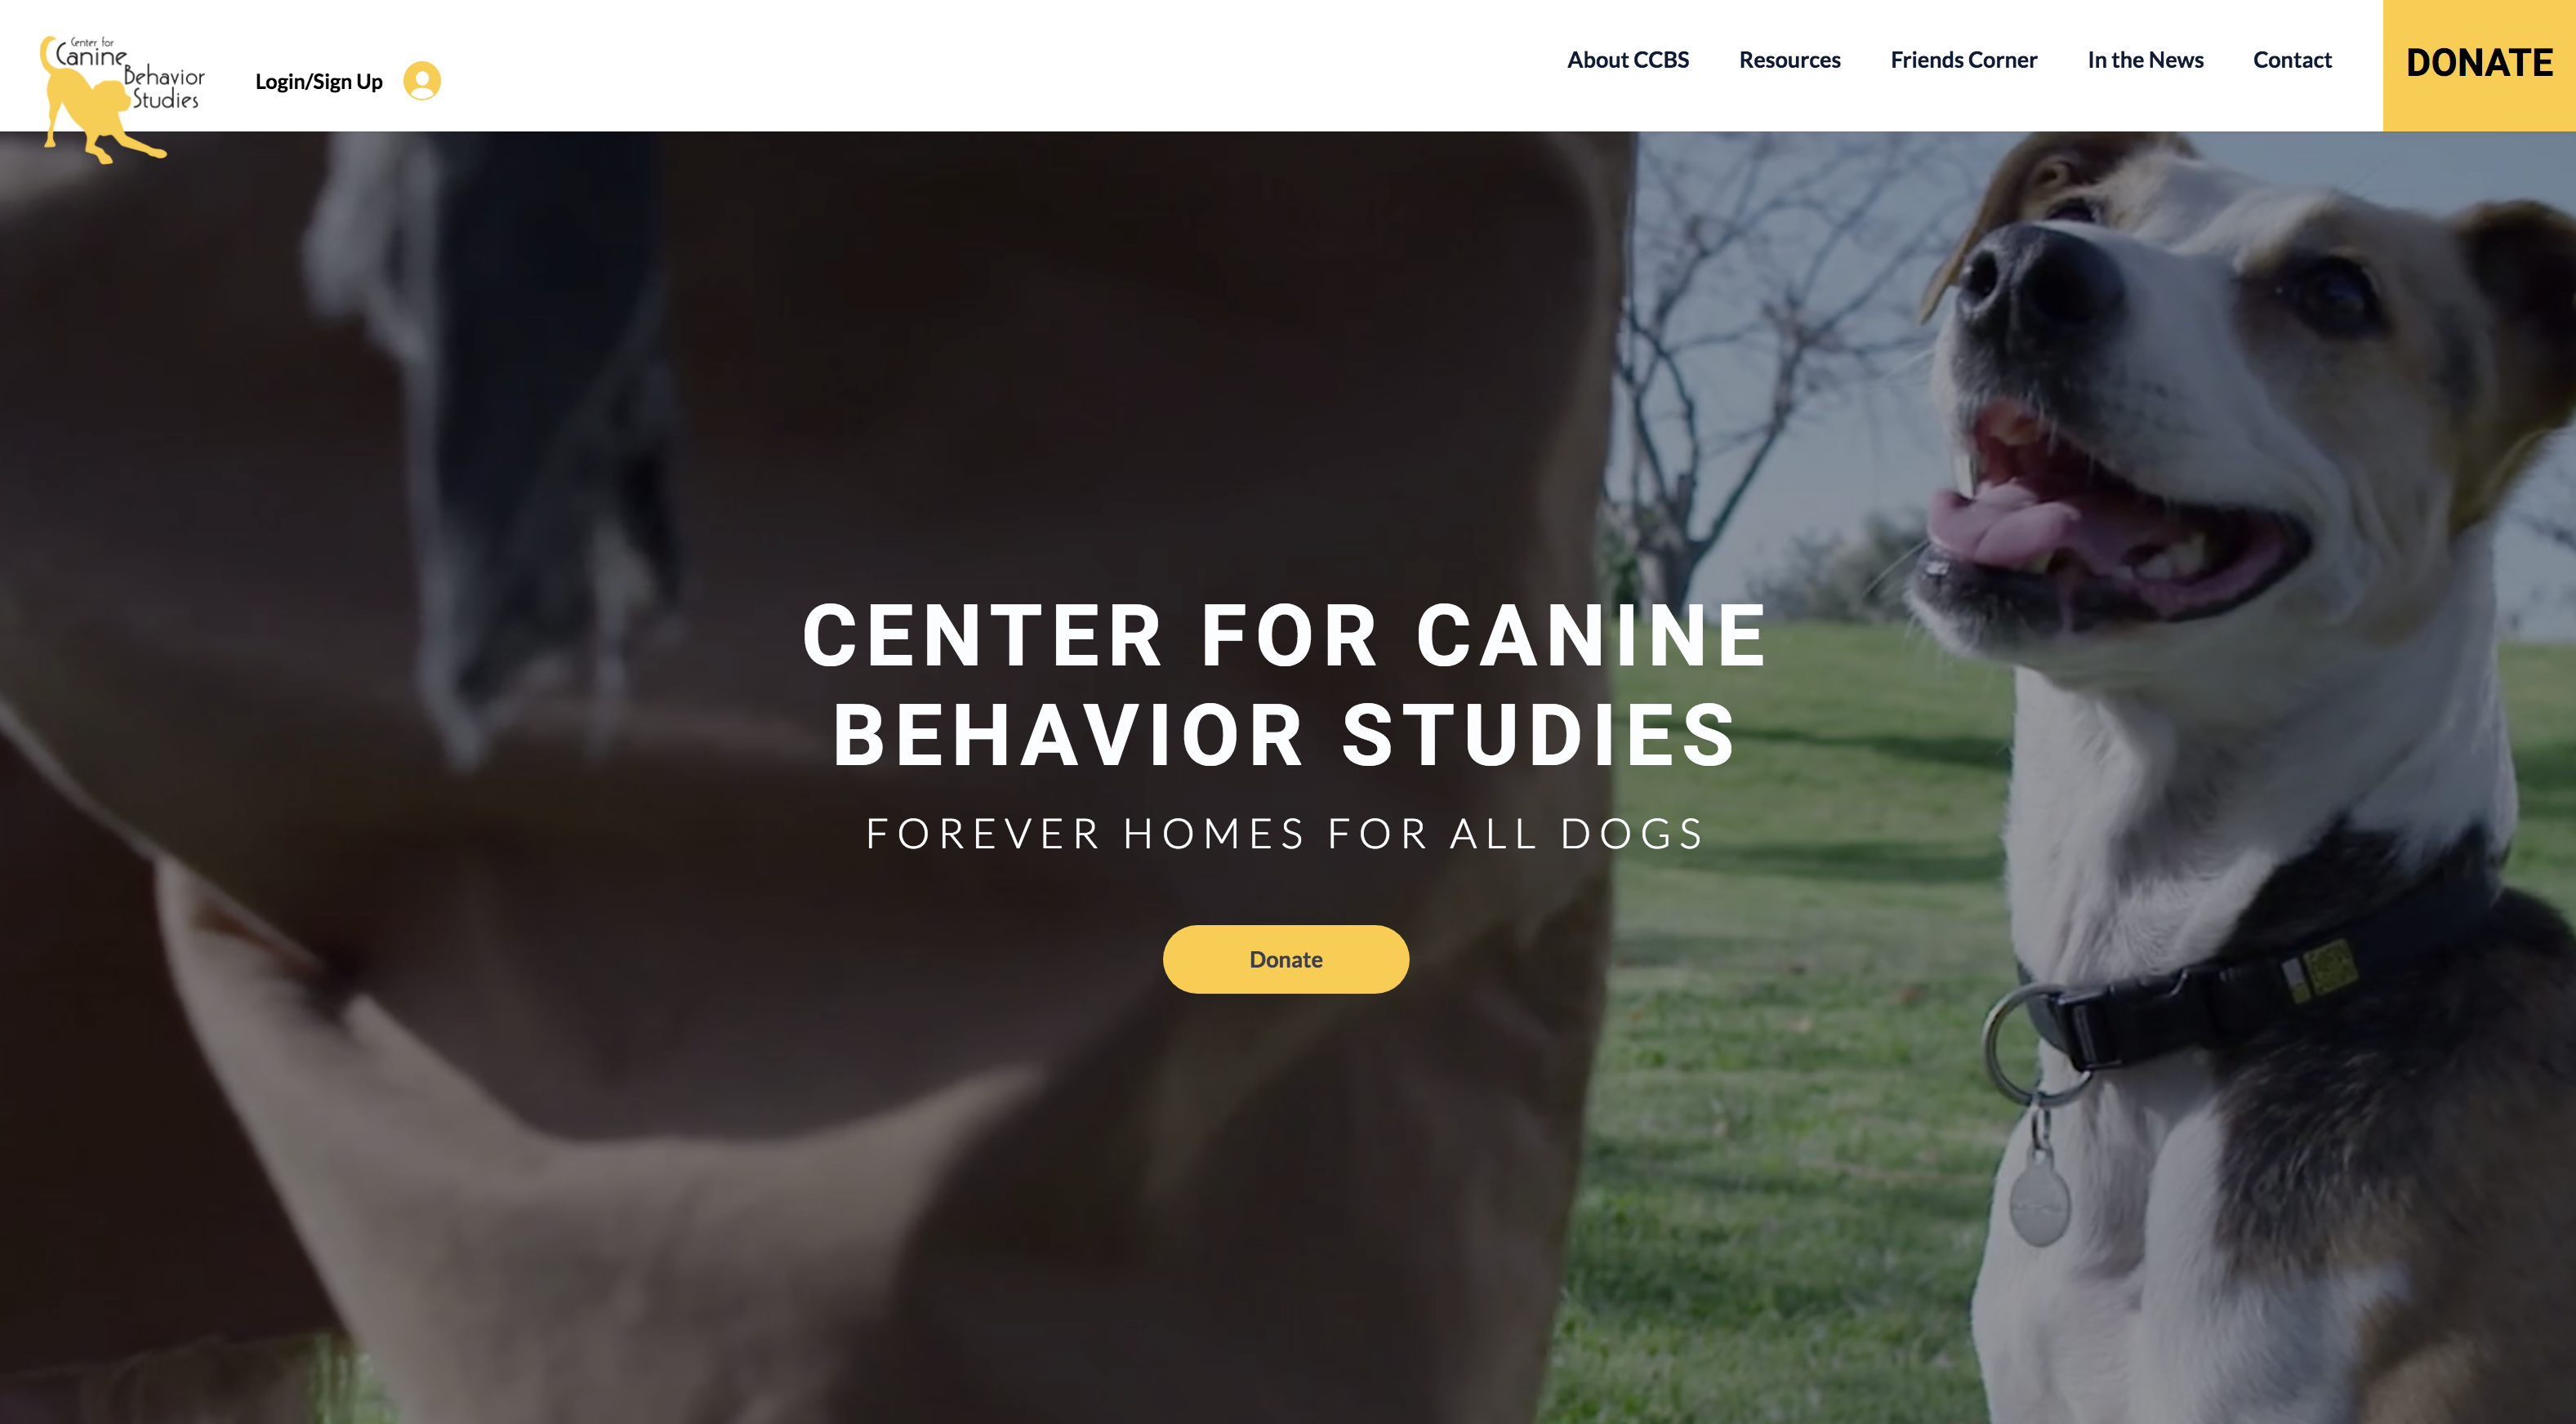 Center for Canine Behavior Studies